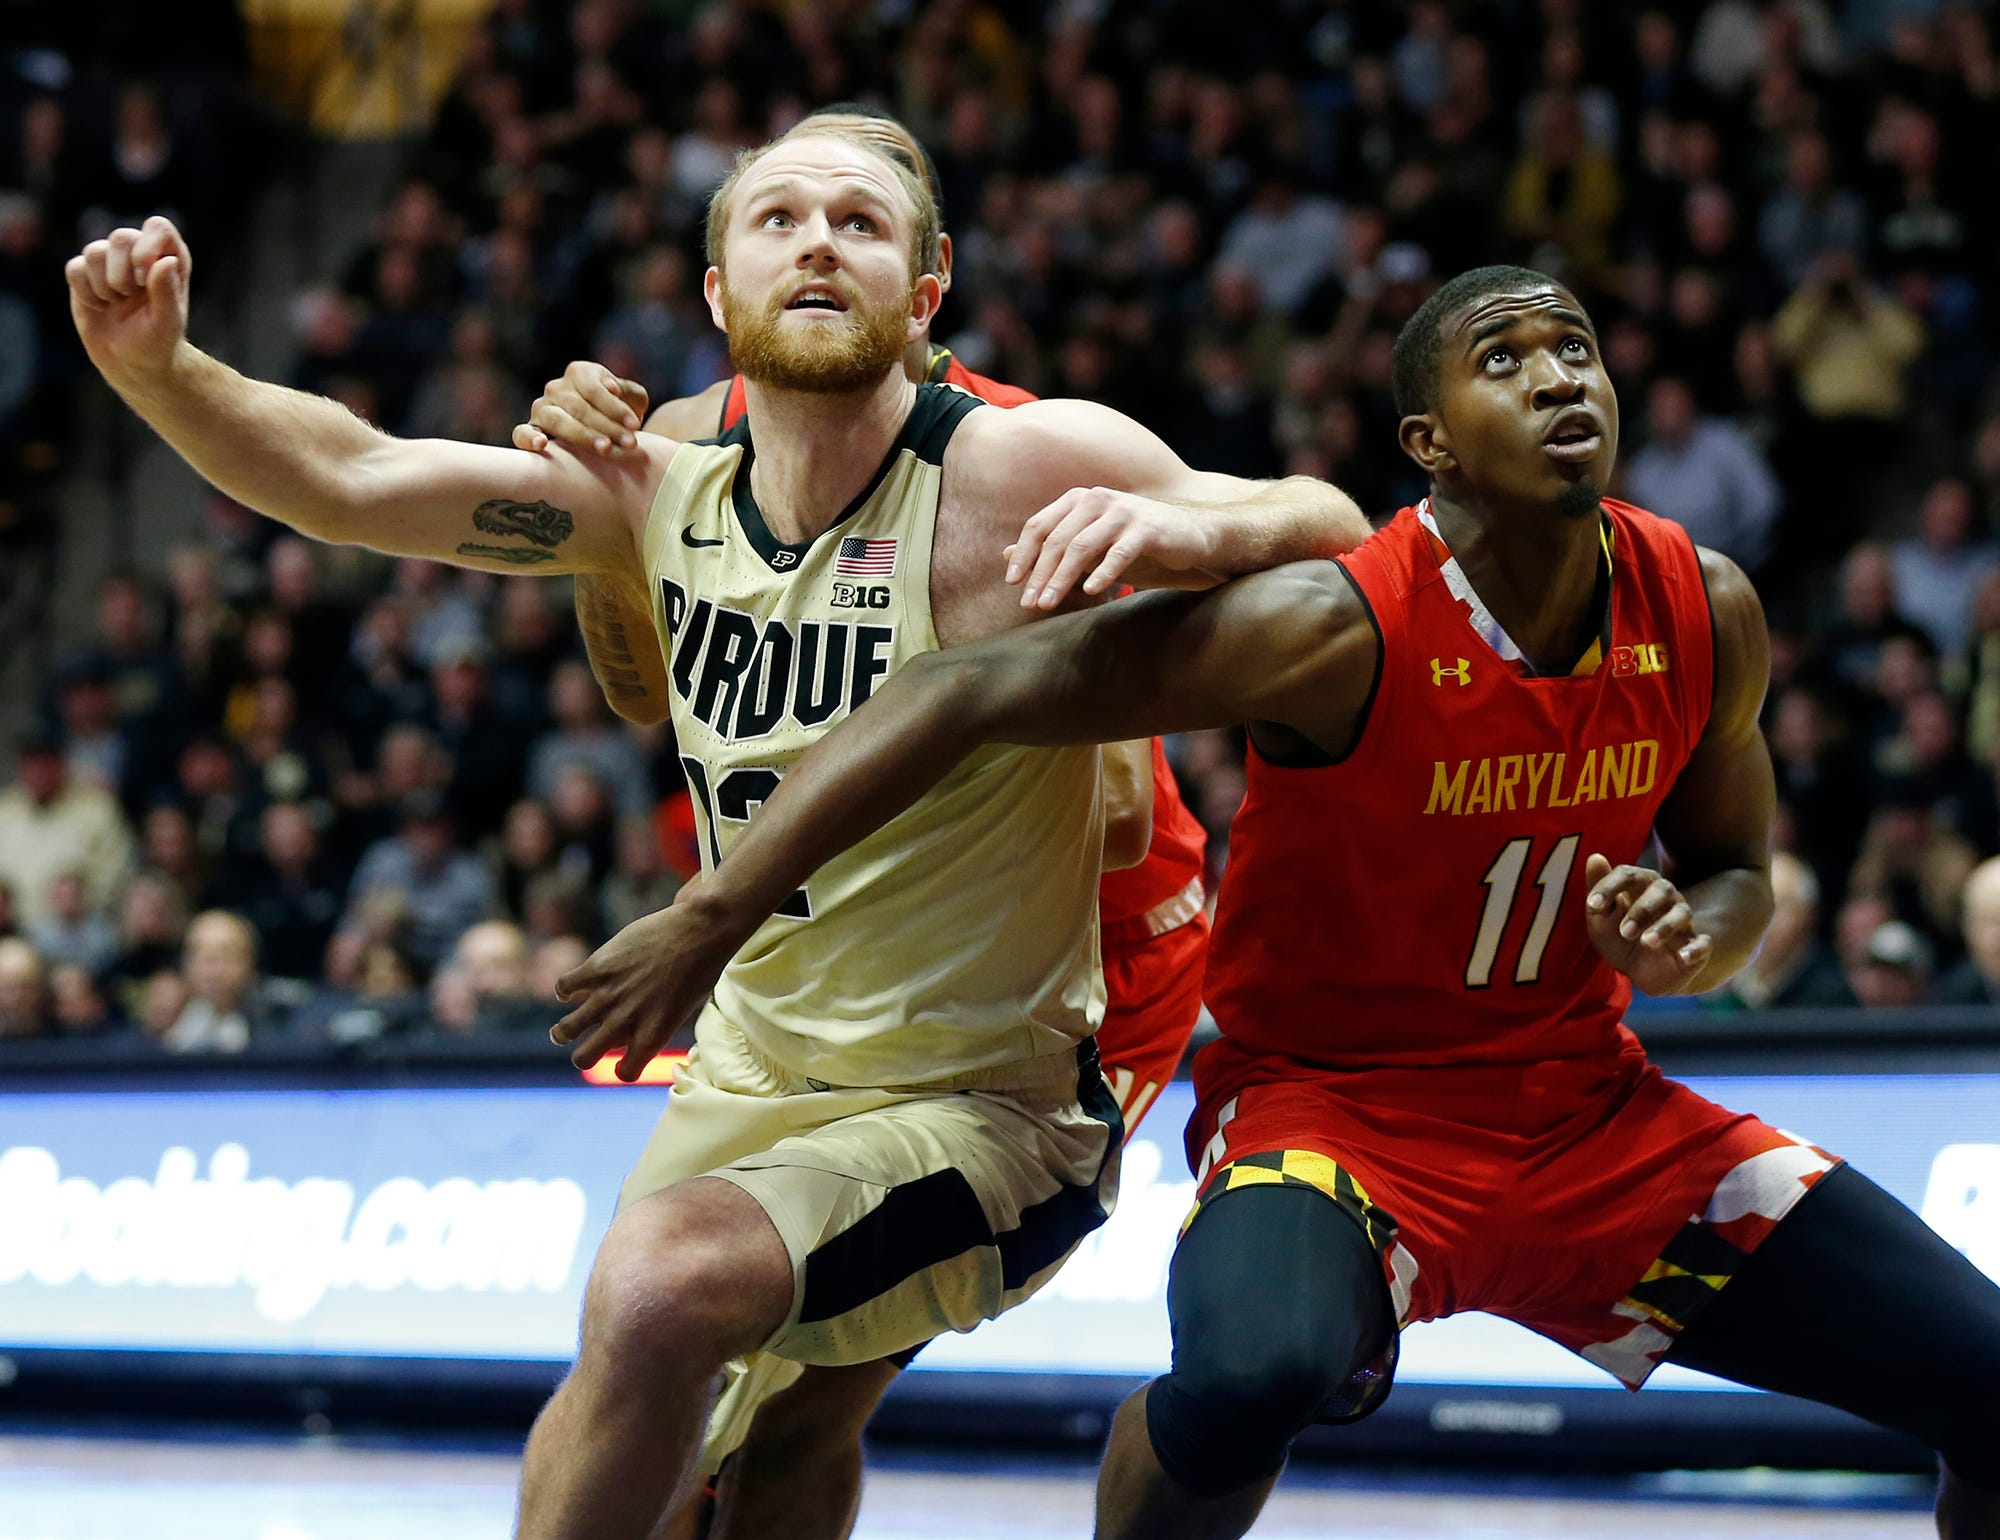 Evan Boudreaux of Purdue wrestles with Darryl Morsell of Maryland for position Thursday, December 6, 2018, at Mackey Arena.